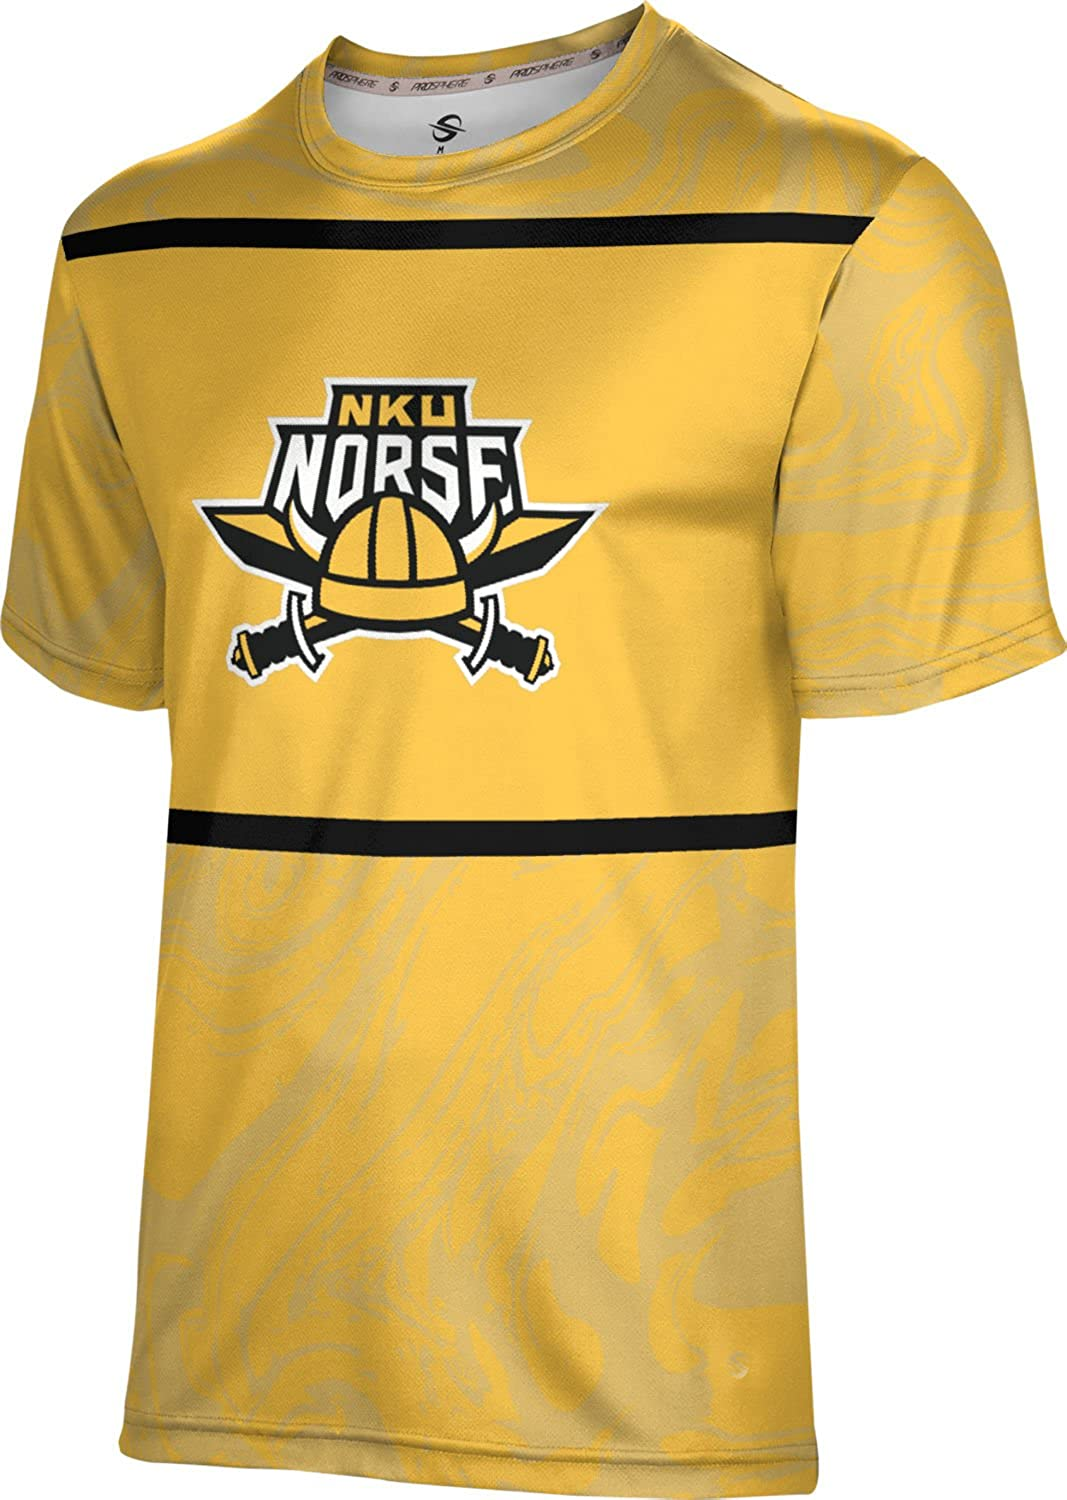 Ripple ProSphere Northern Kentucky University Boys Performance T-Shirt